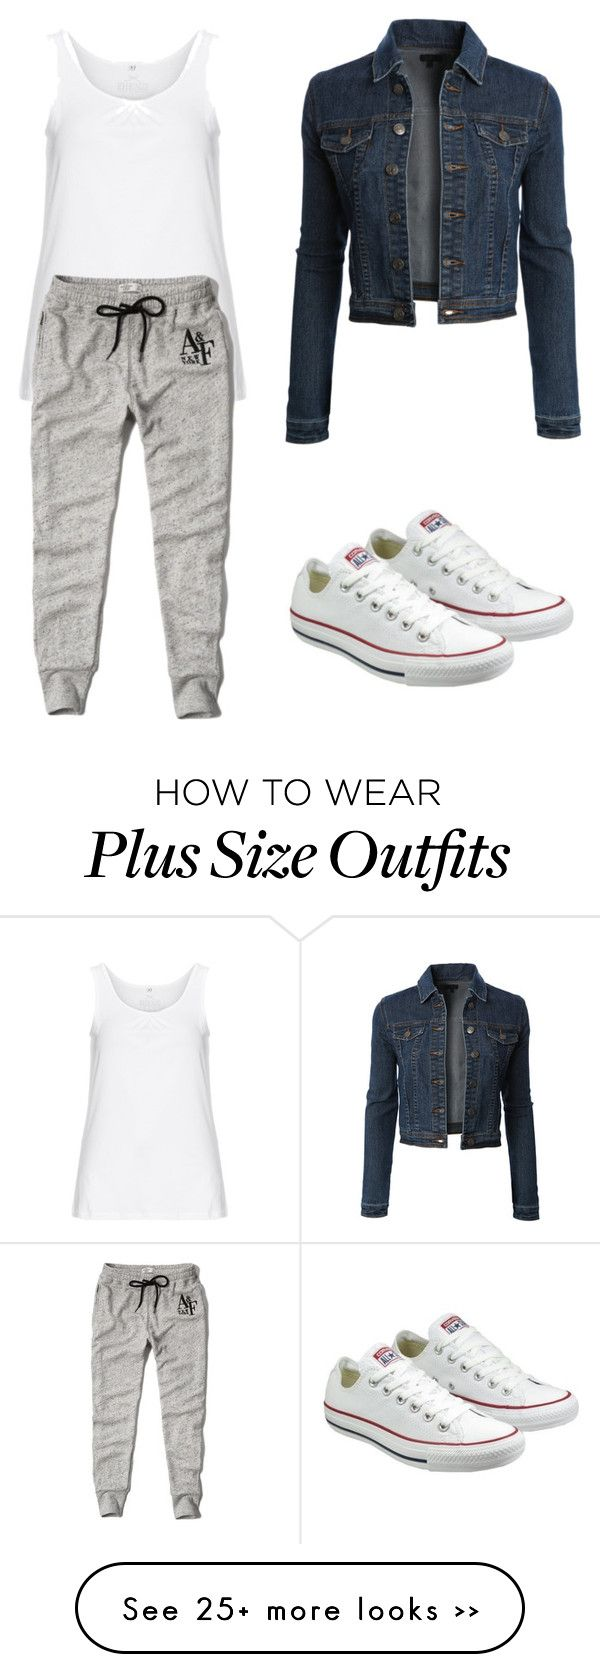 """""""Trending 585"""" by ayannap on Polyvore featuring LE3NO, Zhenzi, Abercrombie & Fitch and Converse"""